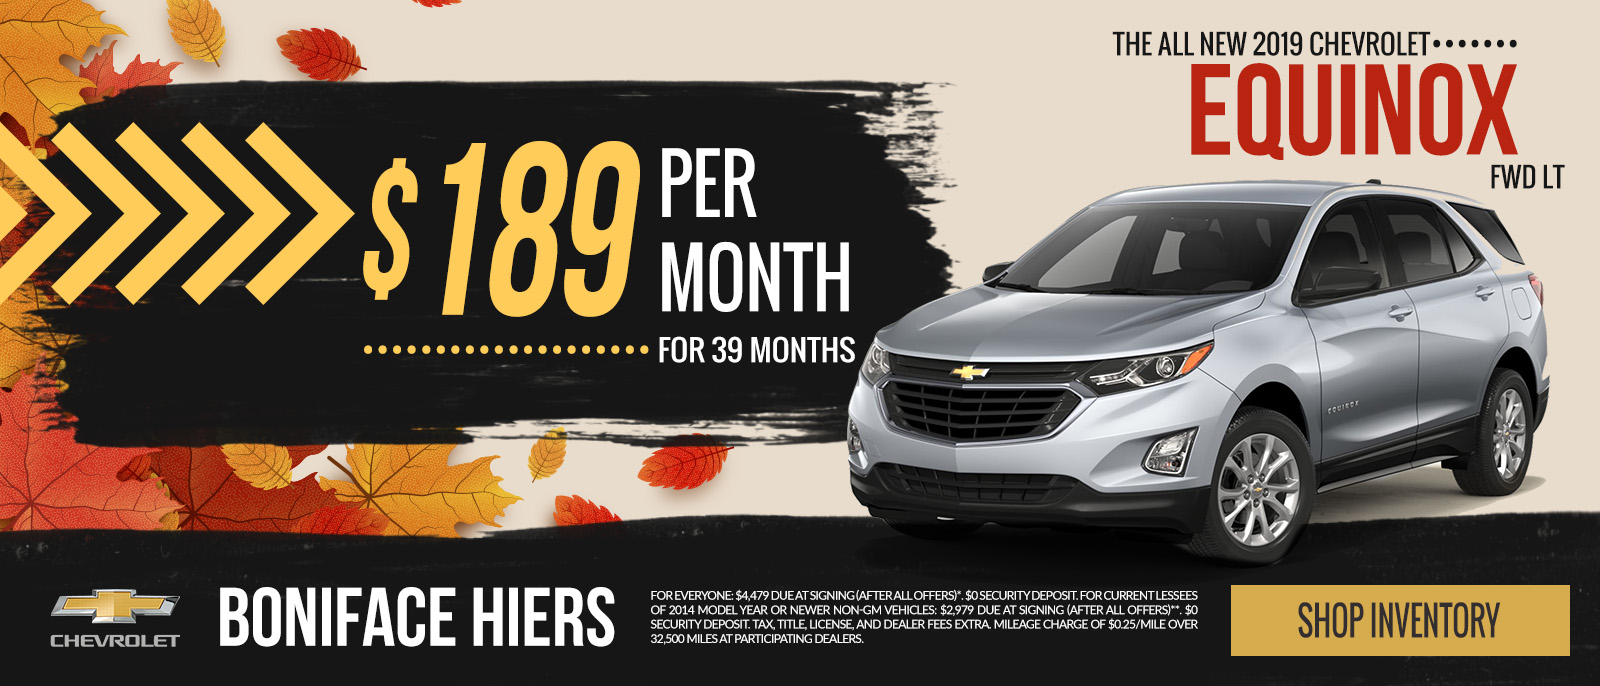 2019 CHEVROLET Equinox FWD LT - Ultra Low-Mileage Lease for Qualified Lessees. $189/month for 39 months.